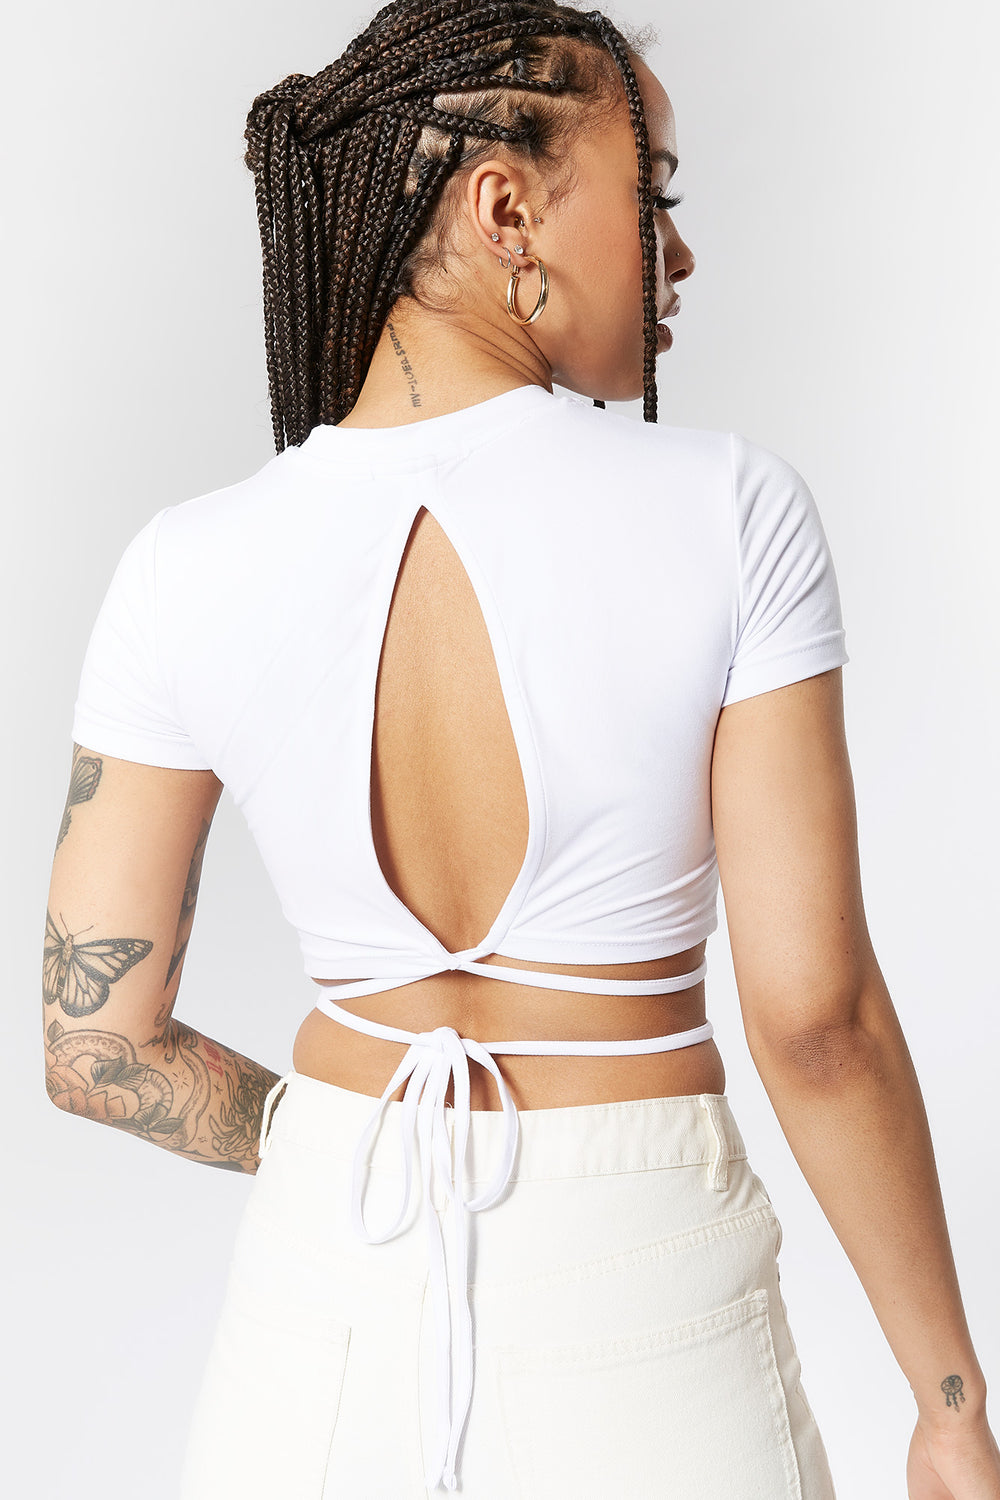 Soft Self-Tie Waist Back Cut-Out Cropped Top White